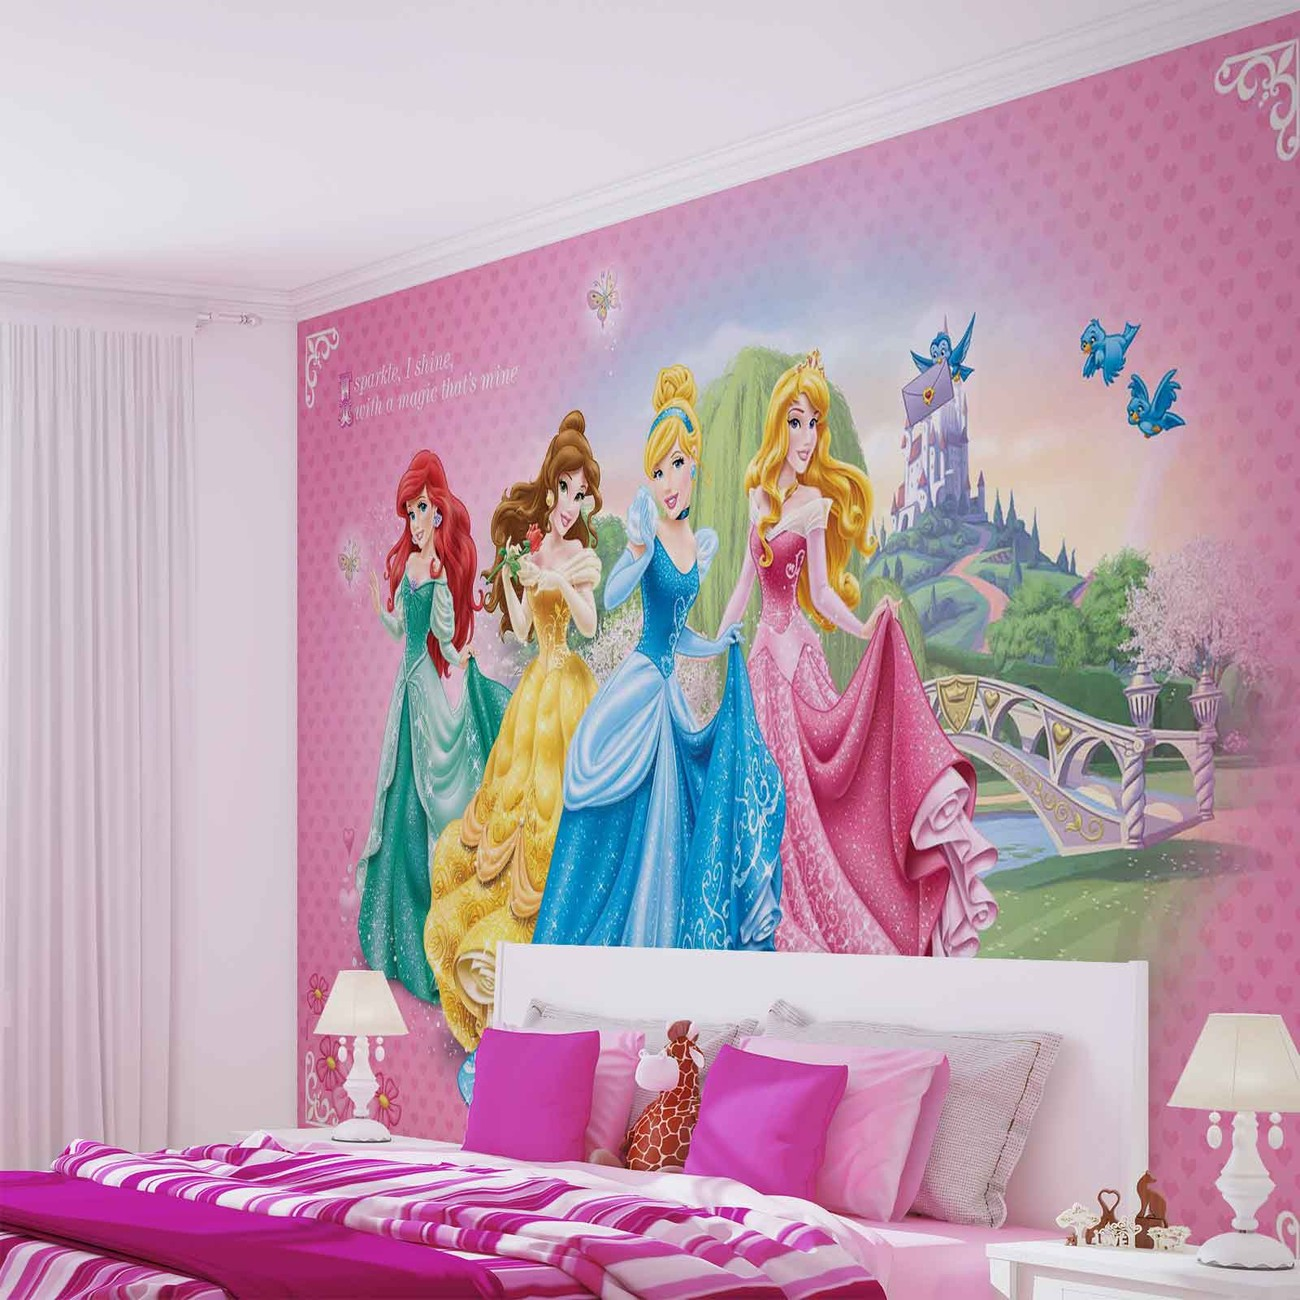 Disney princesses cinderella belle wall paper mural buy for Disney princess mural asda